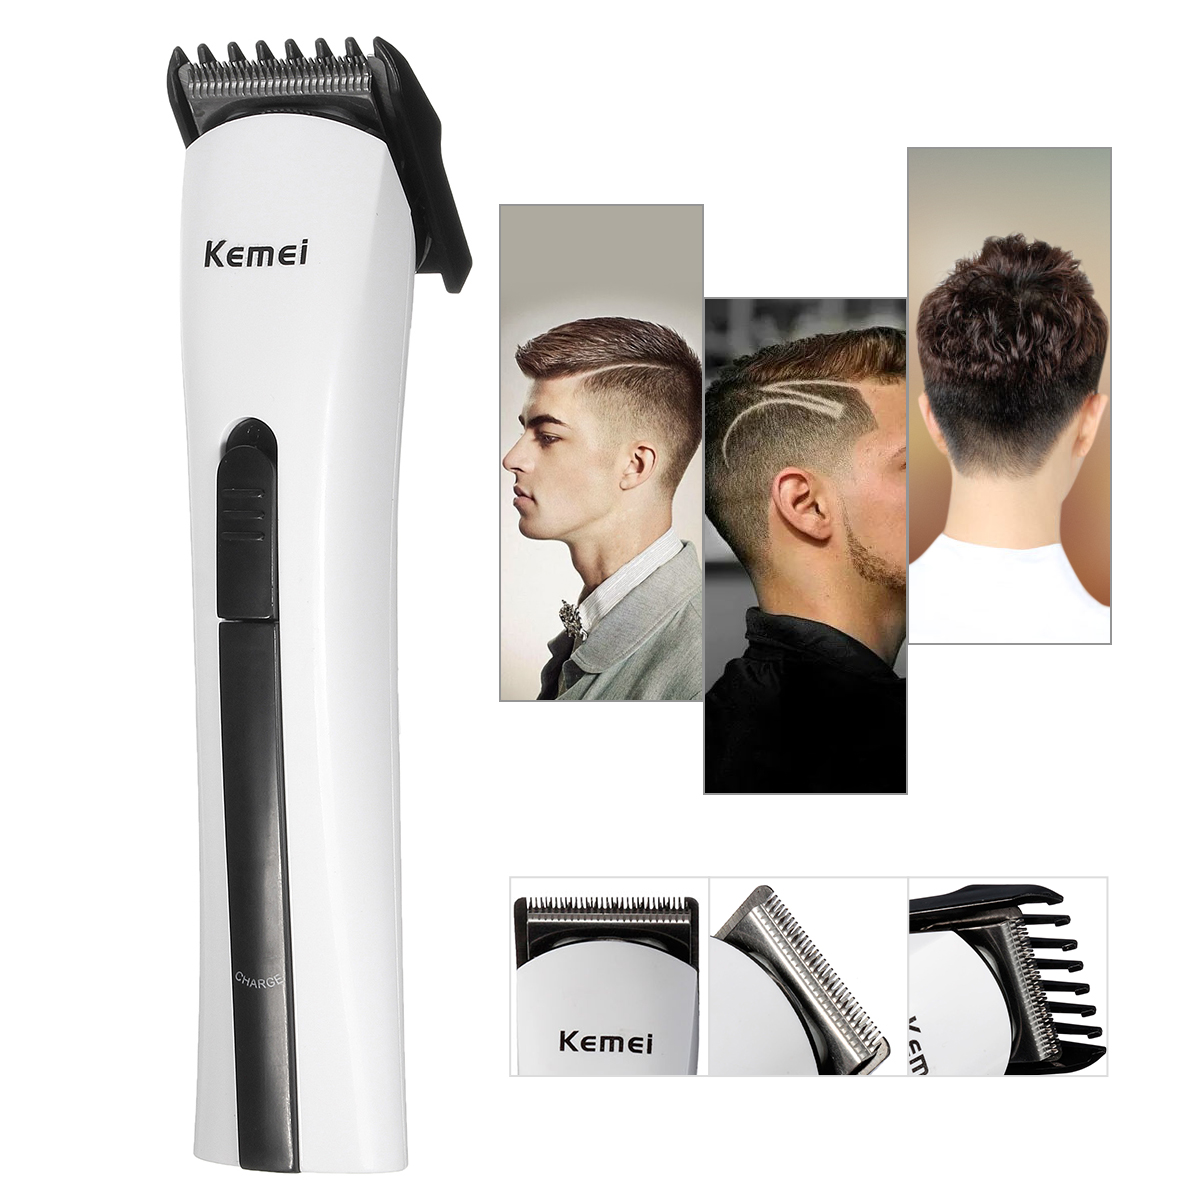 Electric Hair Groom Kit Clipper Mens Boy Professional Shaver Trimmer Haircut Cutter With US Adapter